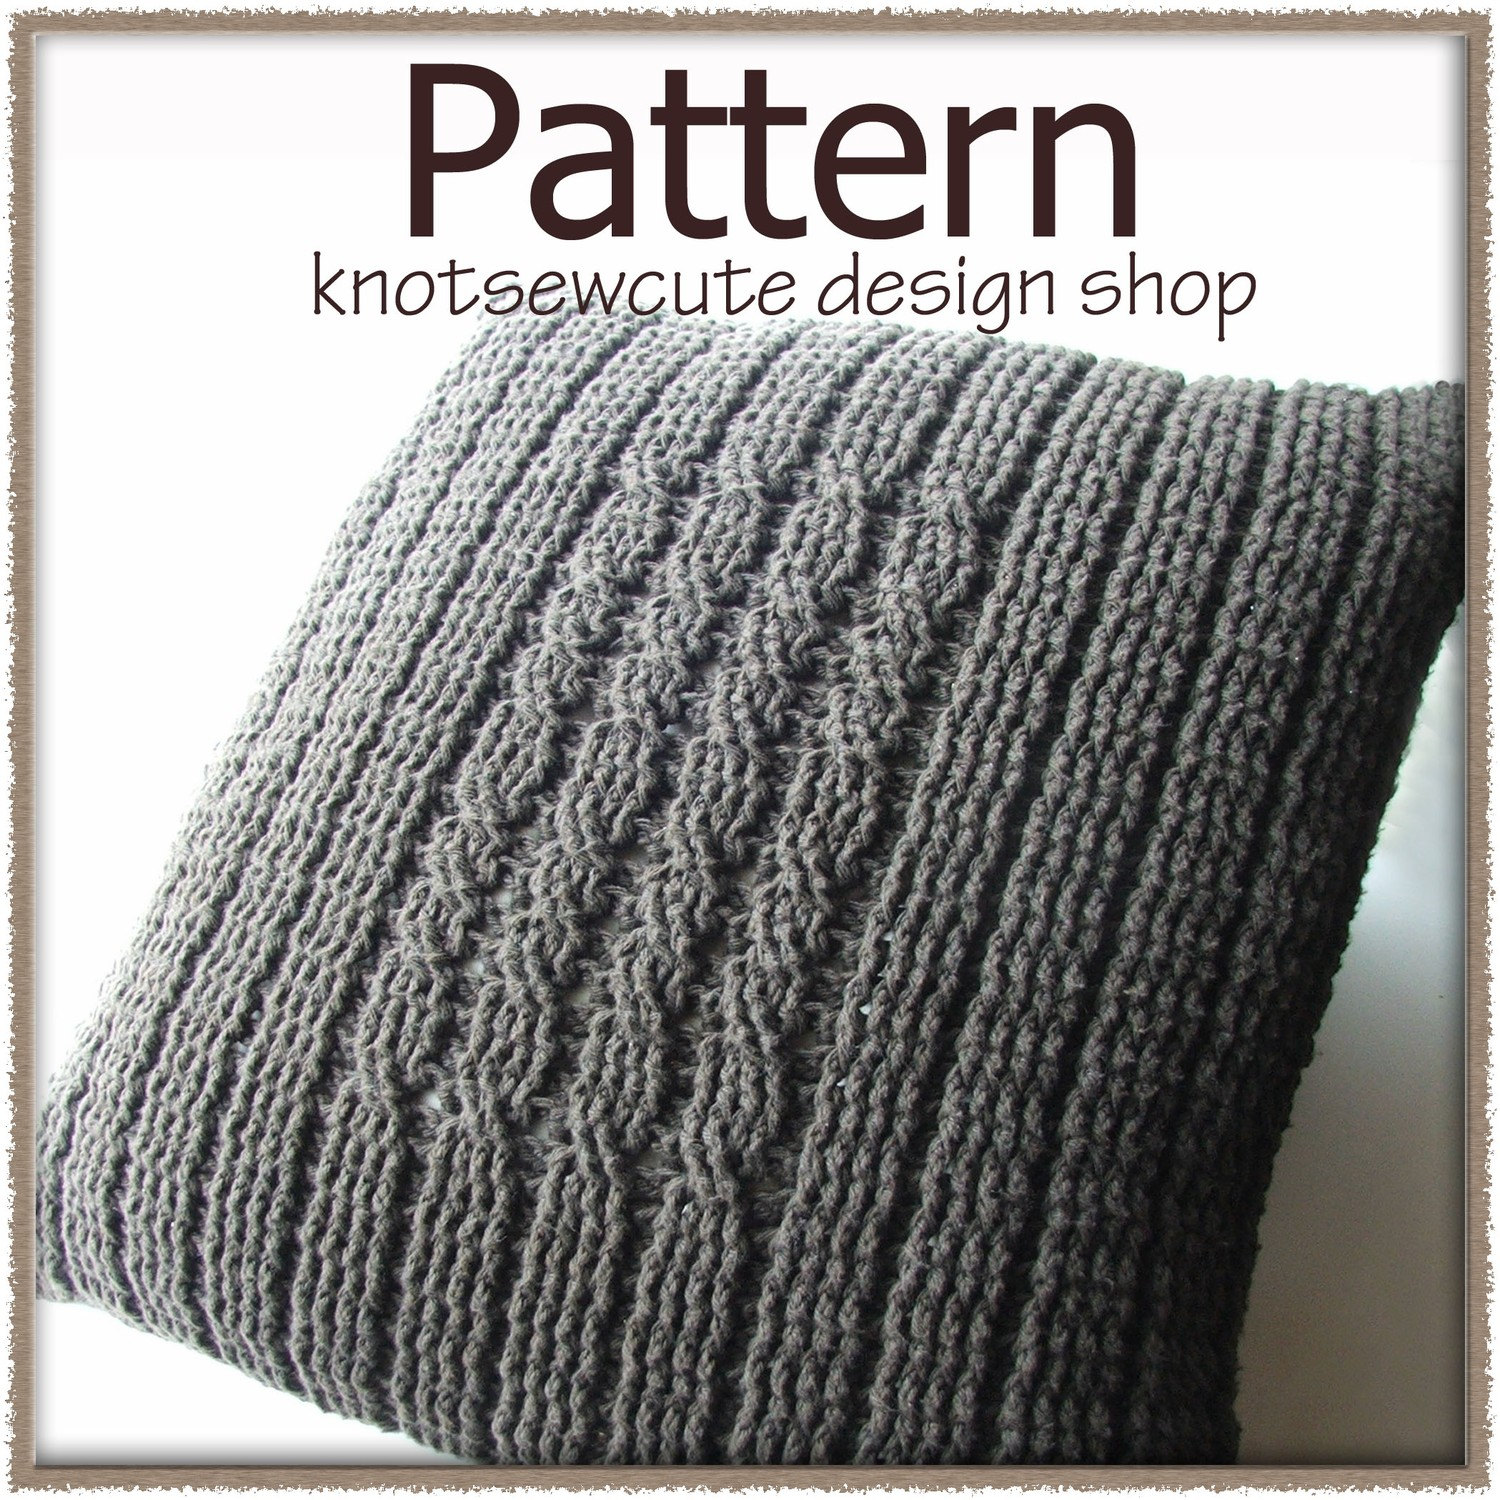 Crochet Stitches For Pillows : Four Post Cabled Pillow Crochet Pattern PDF by knotsewcute